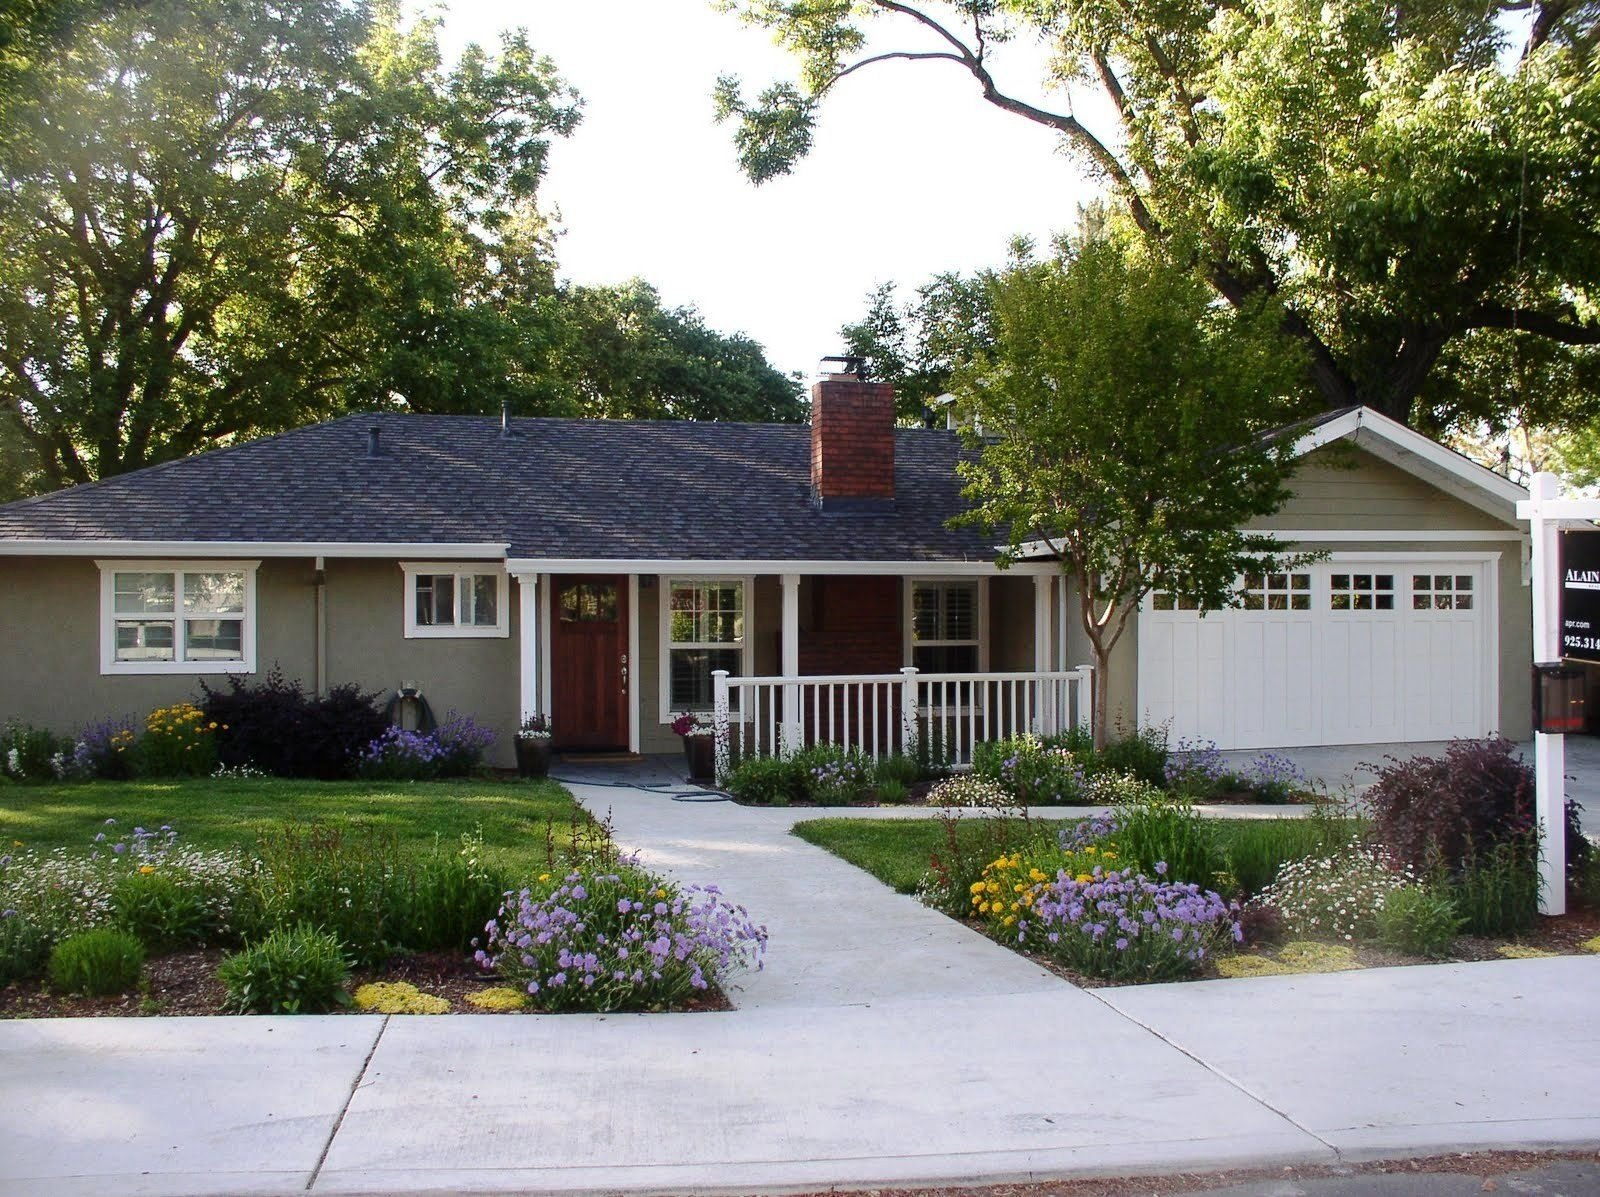 10 Best Exterior Paint Ideas For Ranch Style Homes awesome best exterior paint color ideas for small u home of ranch